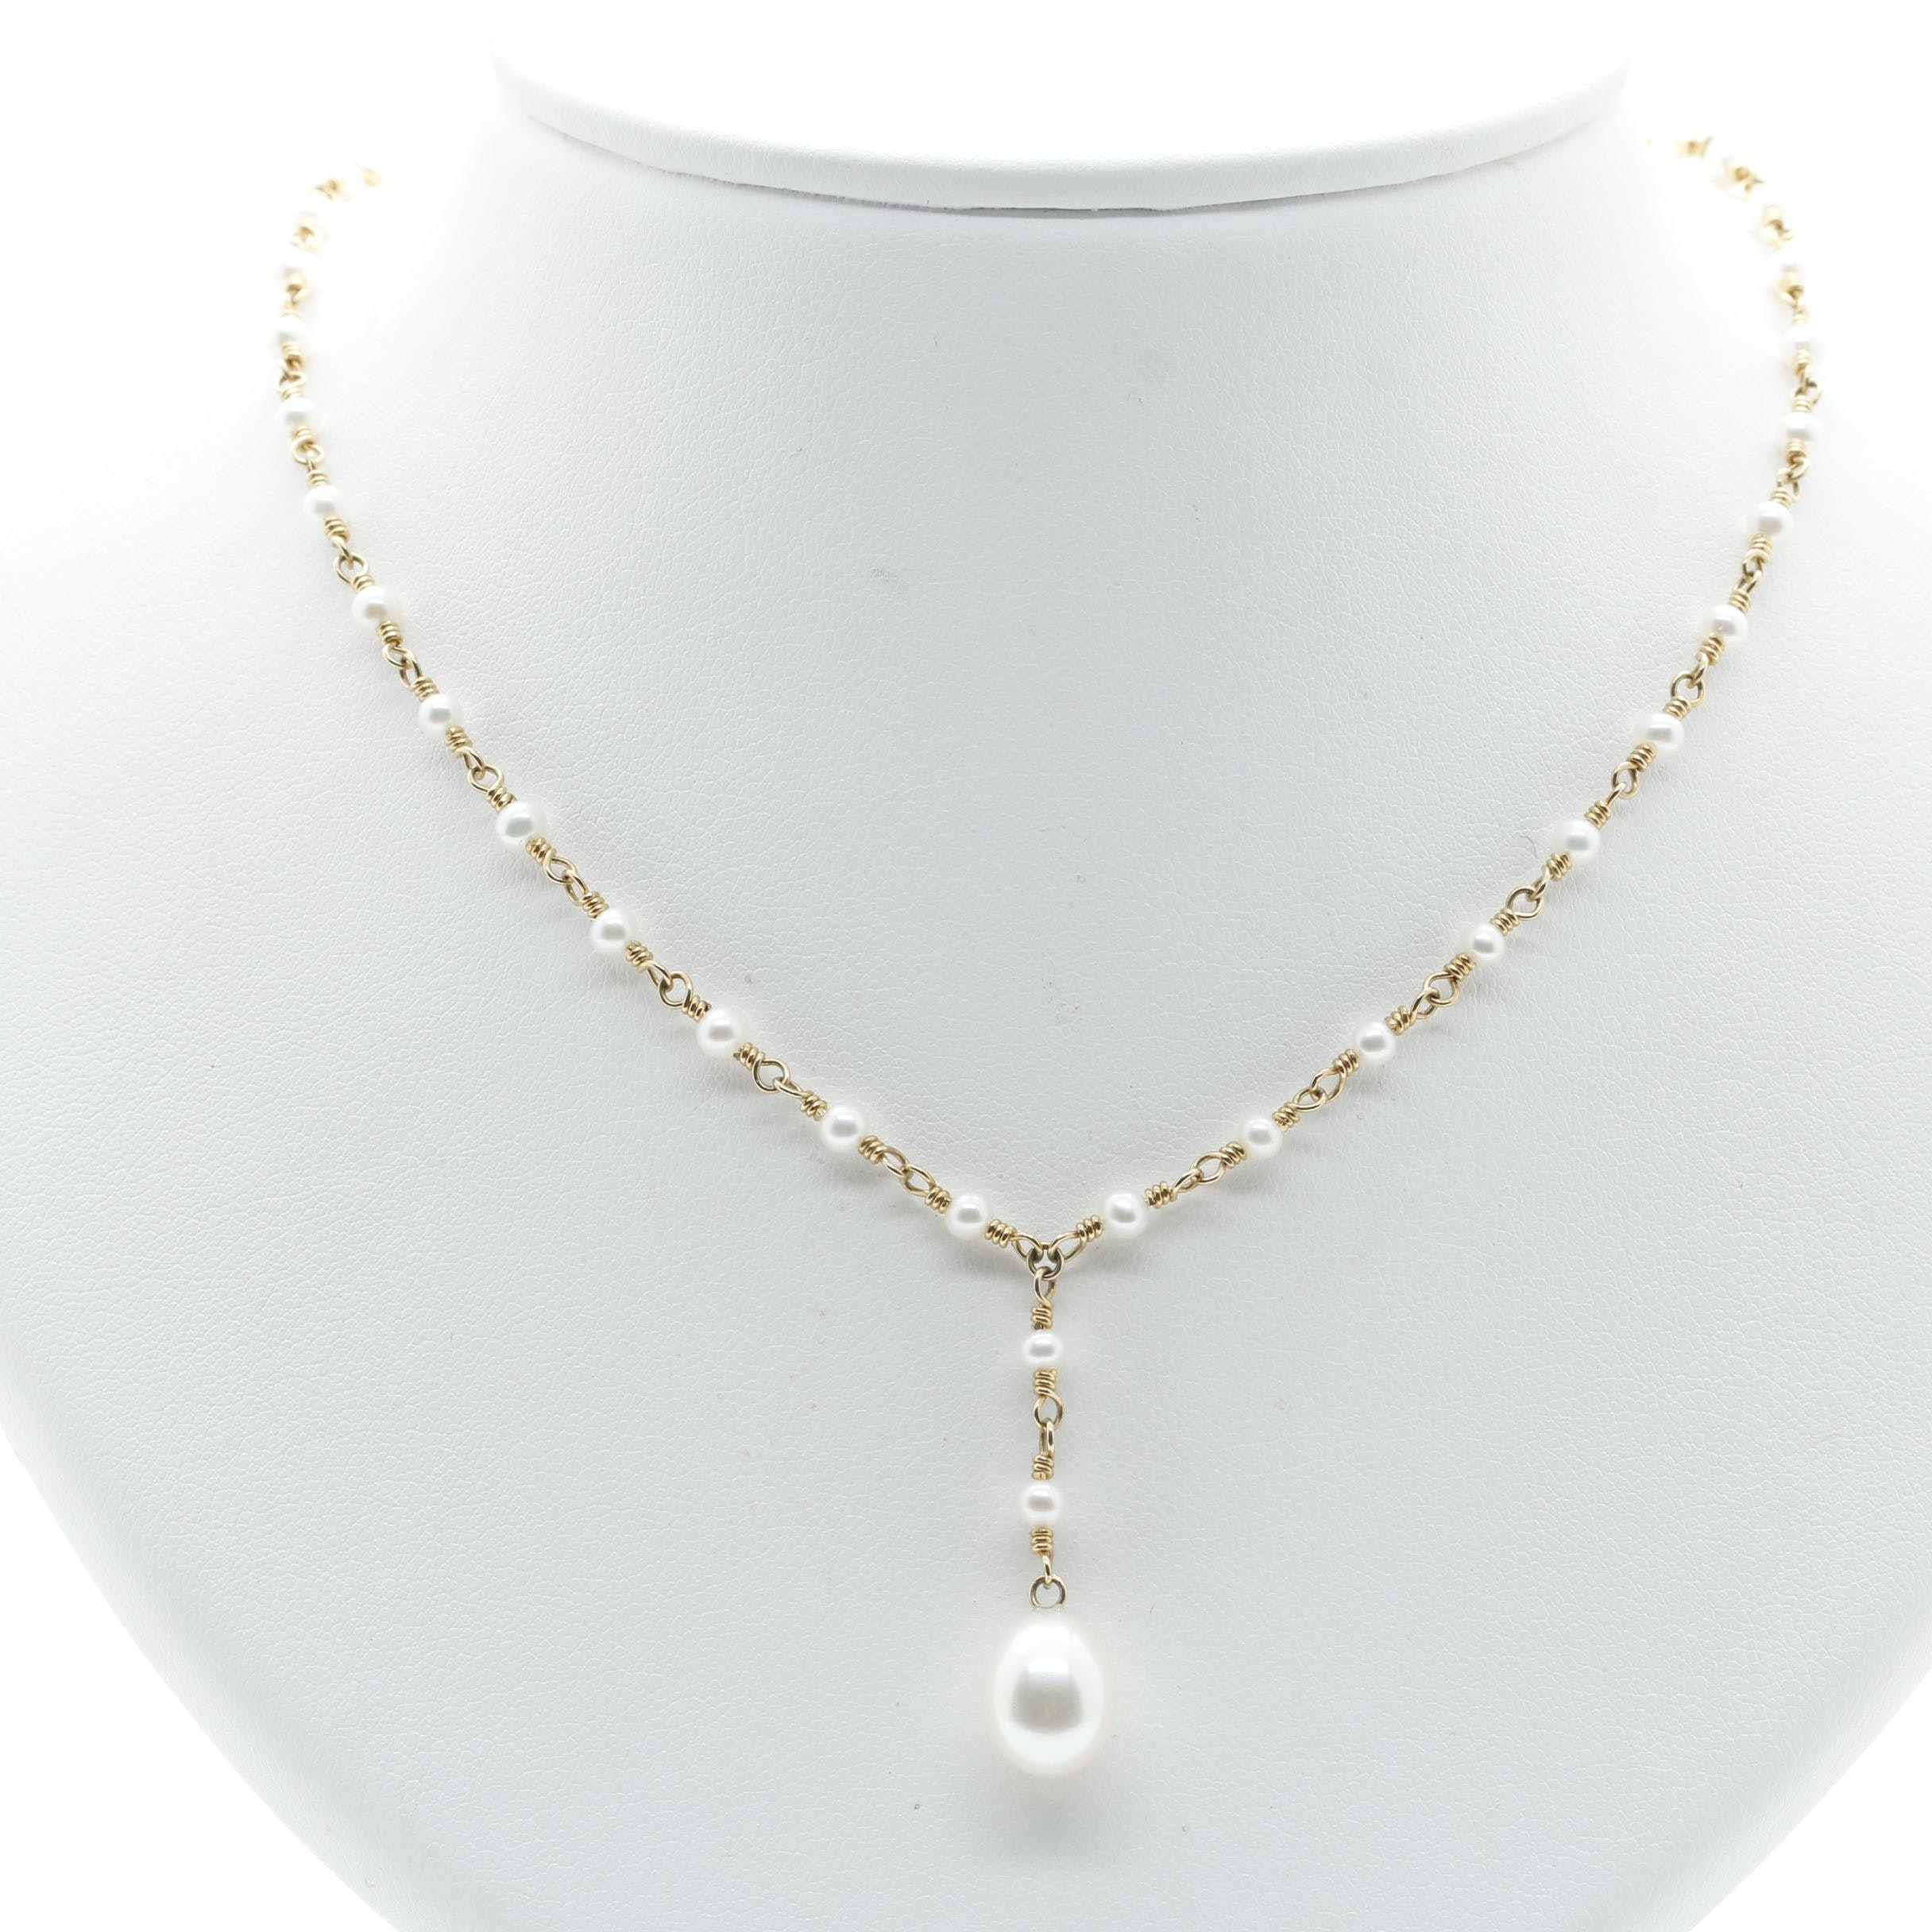 Tiffany & Co. 18K Yellow Gold Cultured Pearl Drop Necklace